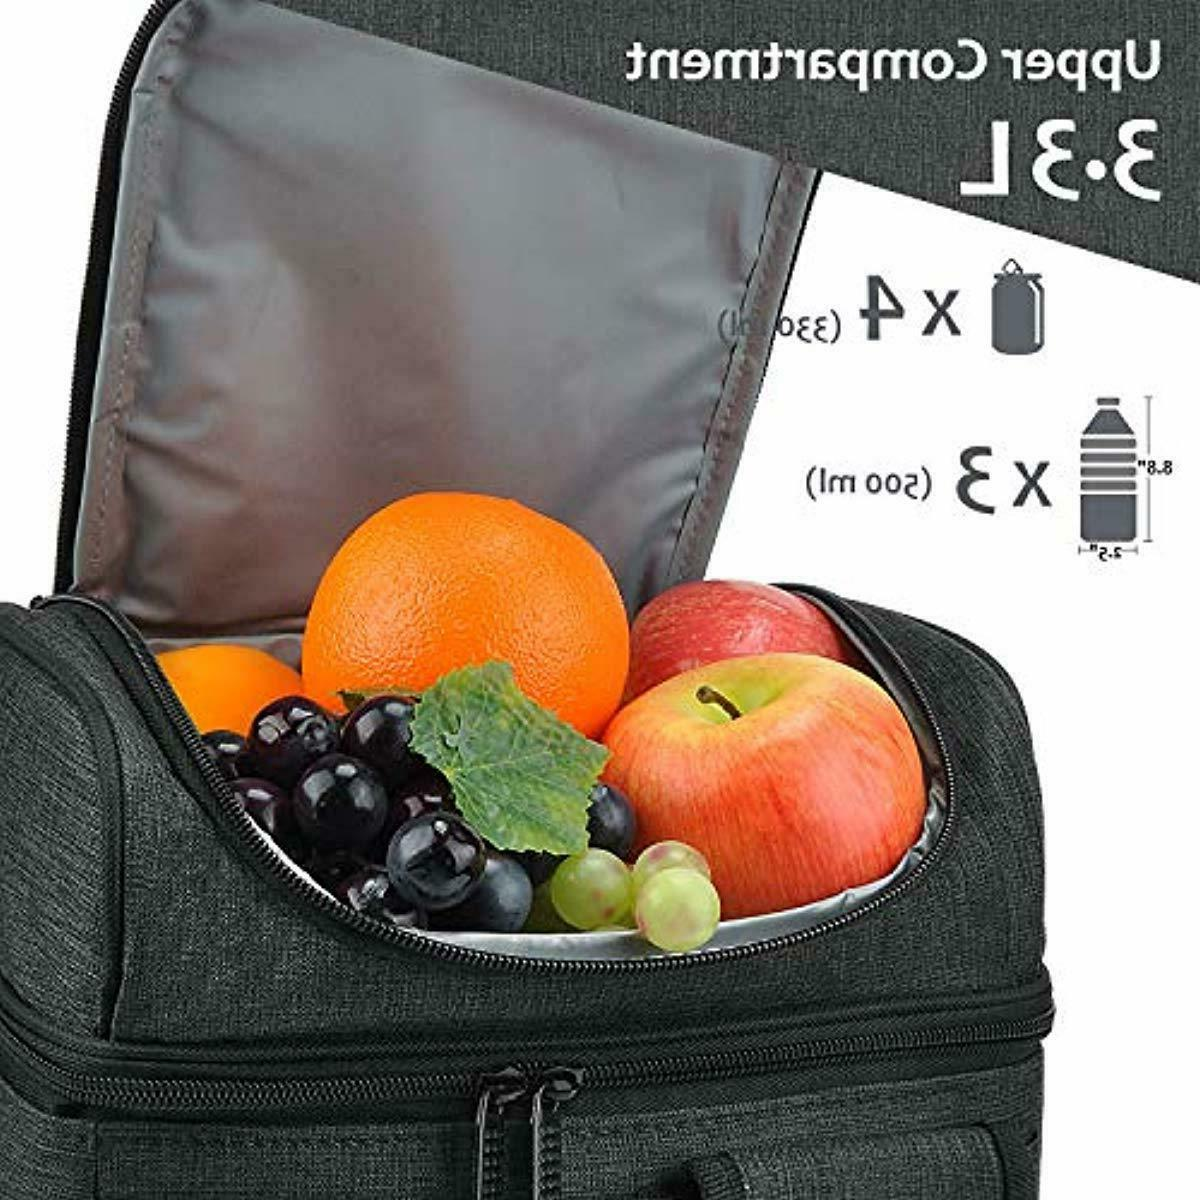 1Insulated Lunch Bag, Leakproof Thermal Cooler for NeW